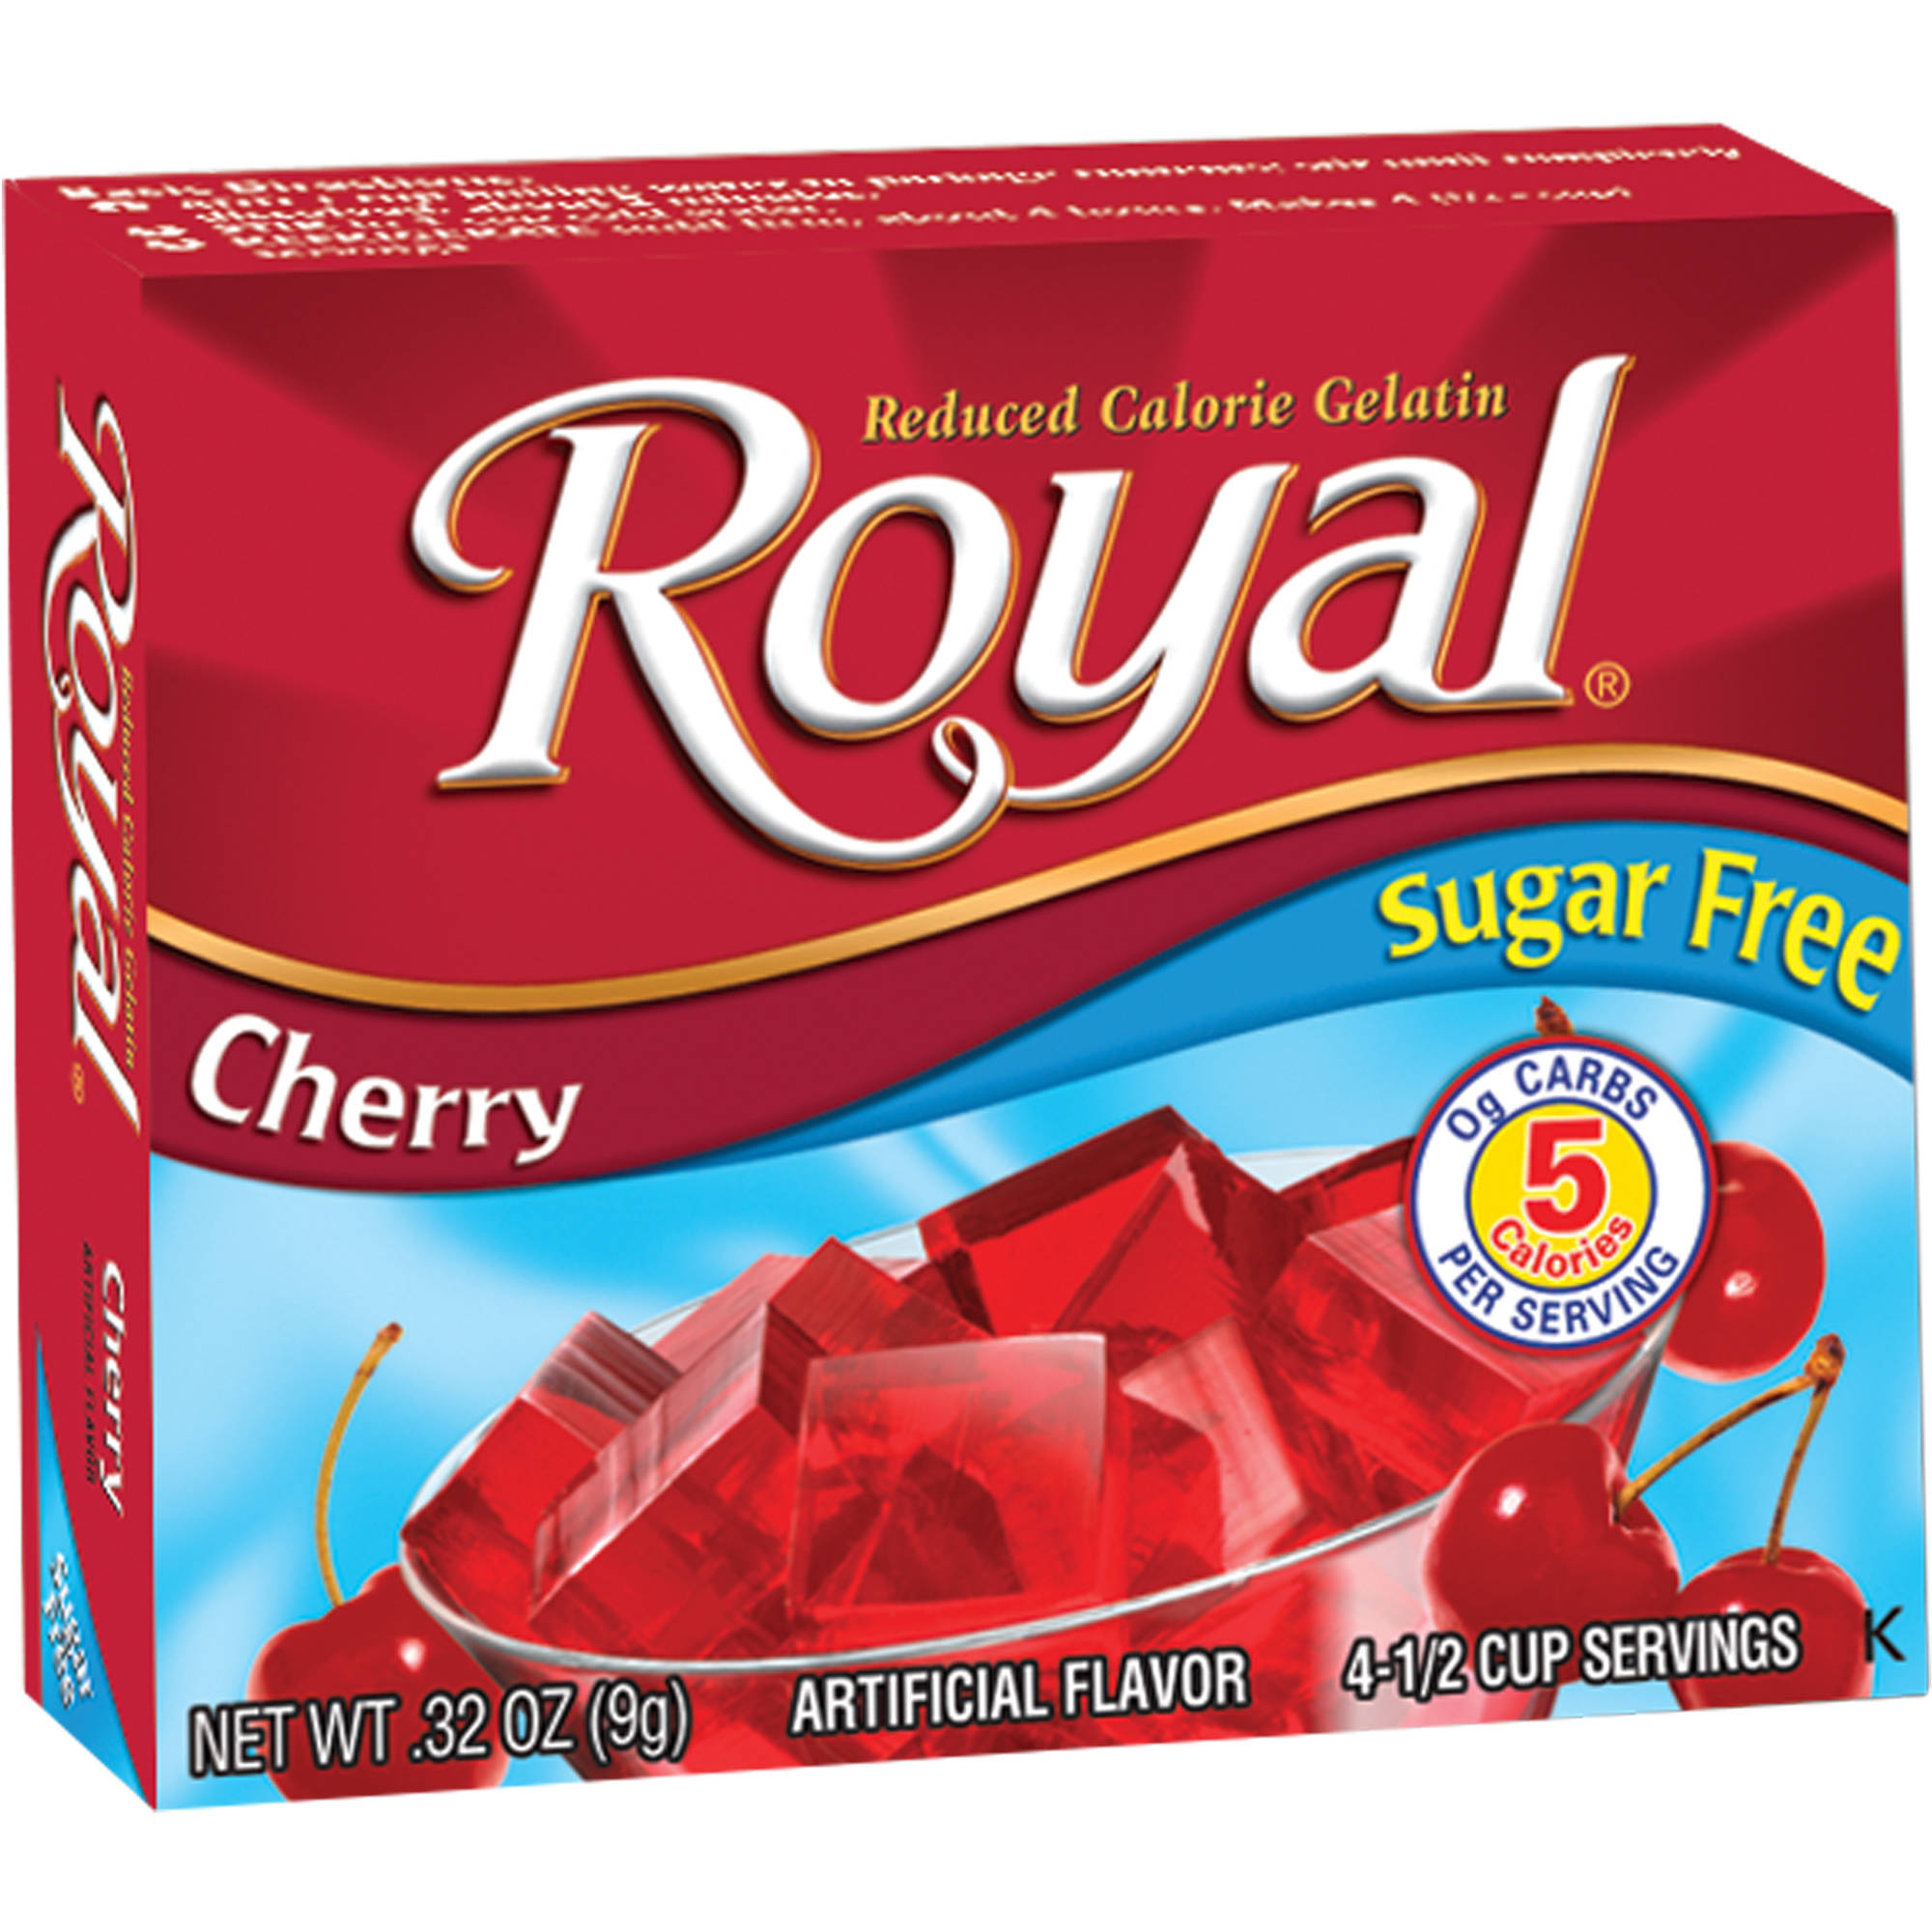 Royal Cherry Reduced Calorie Gelatin, 0.32 oz, (Pack of 12) 1014